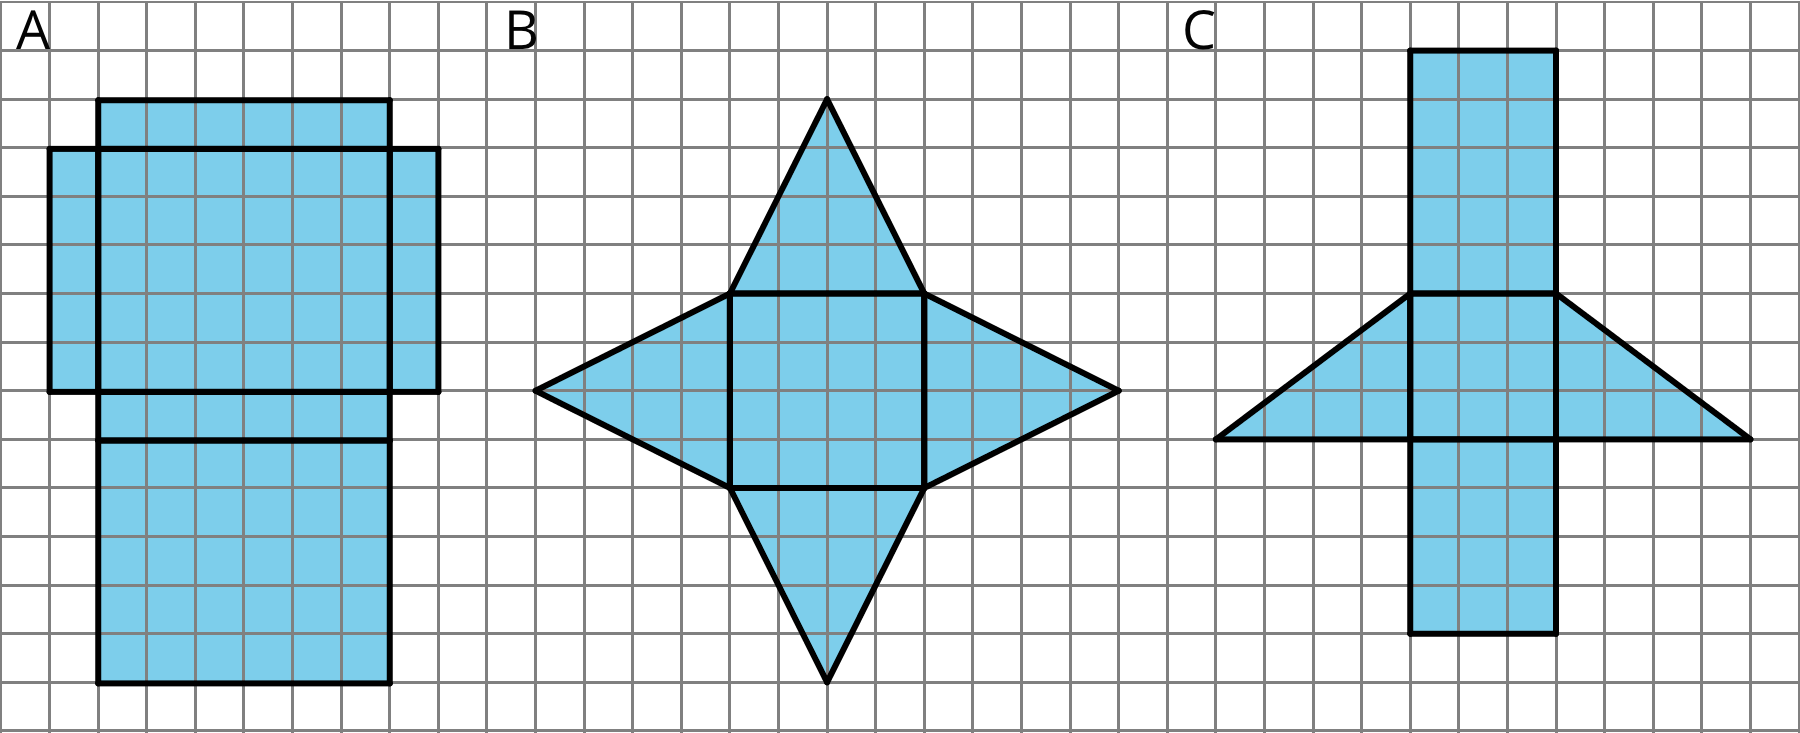 Three nets on a grid, labeled A, B, and C. Net A is composed of two rectangles that are 5 units tall by 6 units wide, two that are 5 units high and one unit wide, and two that are one unit high and six units wide. Net B is a square with a side length of 4 units and is surrounded by triangles that are four units wide at the base and four units high. Net C is a square with a side length of 3, a rectangle 3 units wide and 5 units high, another rectangle that is 3 units wide and 4 units tall, and two triangles, one on either side, that are three units tall by four units across.